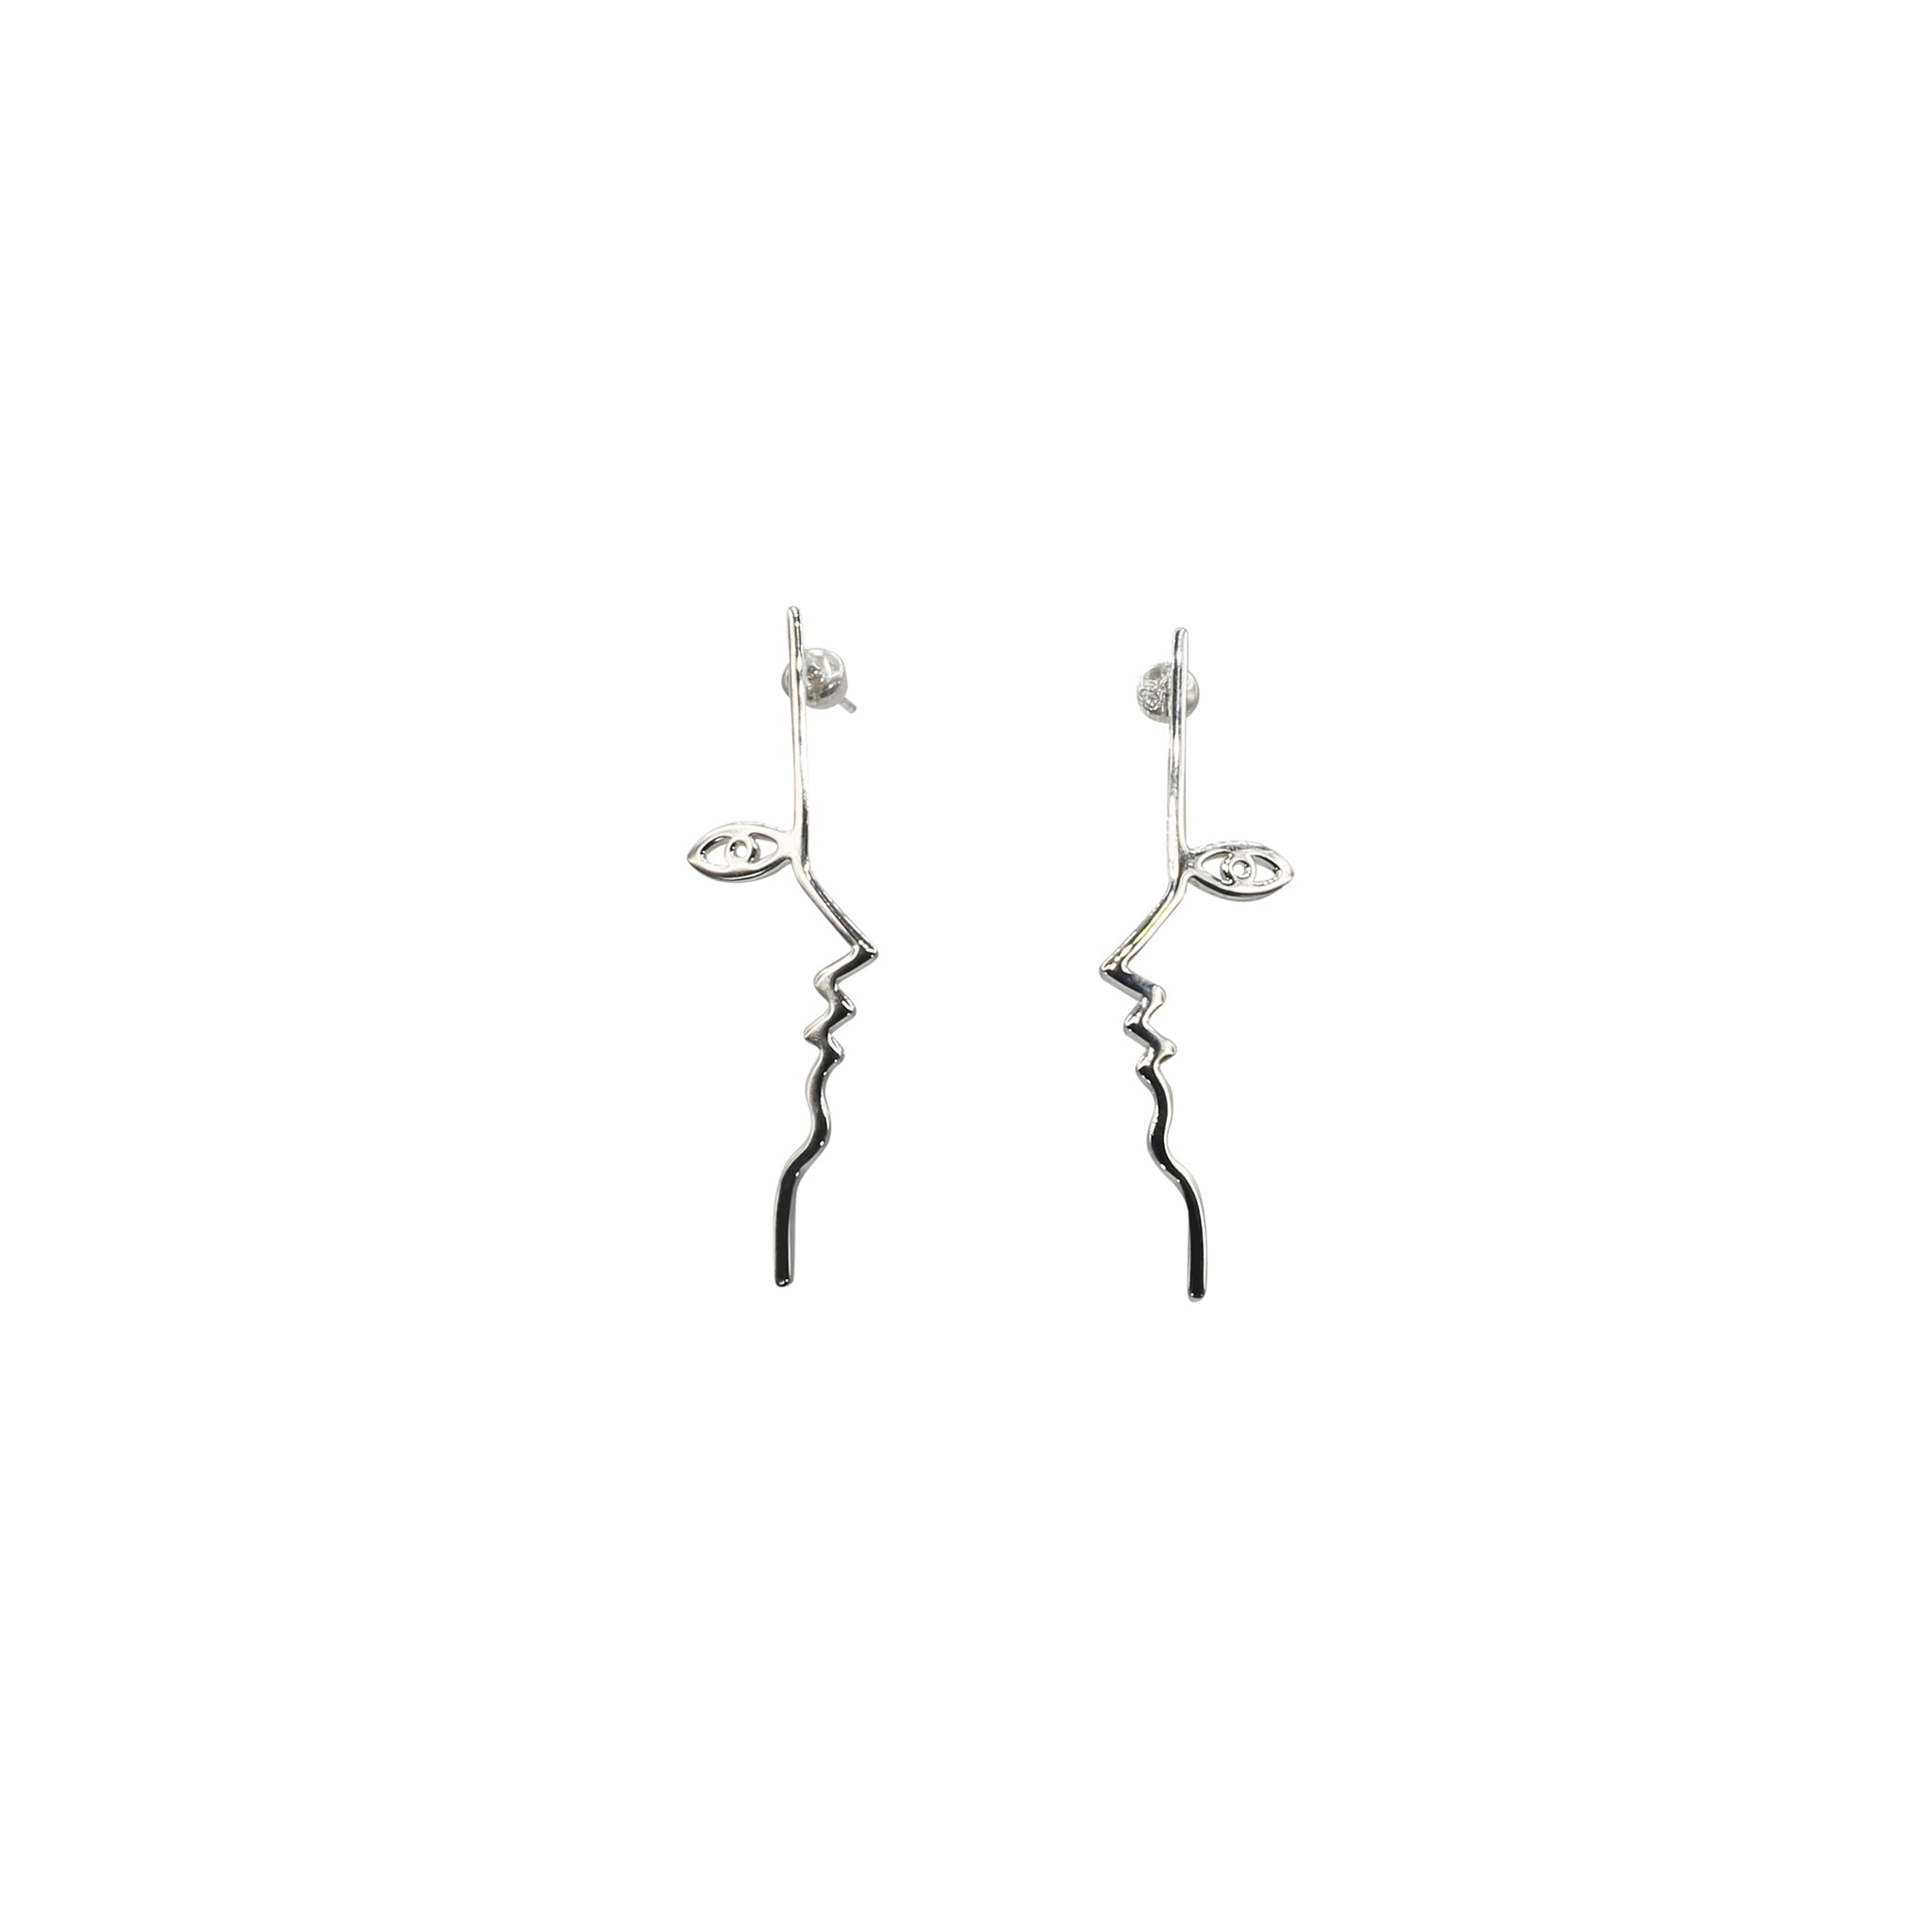 Mara Paris Dina Earrings Sterling Silver